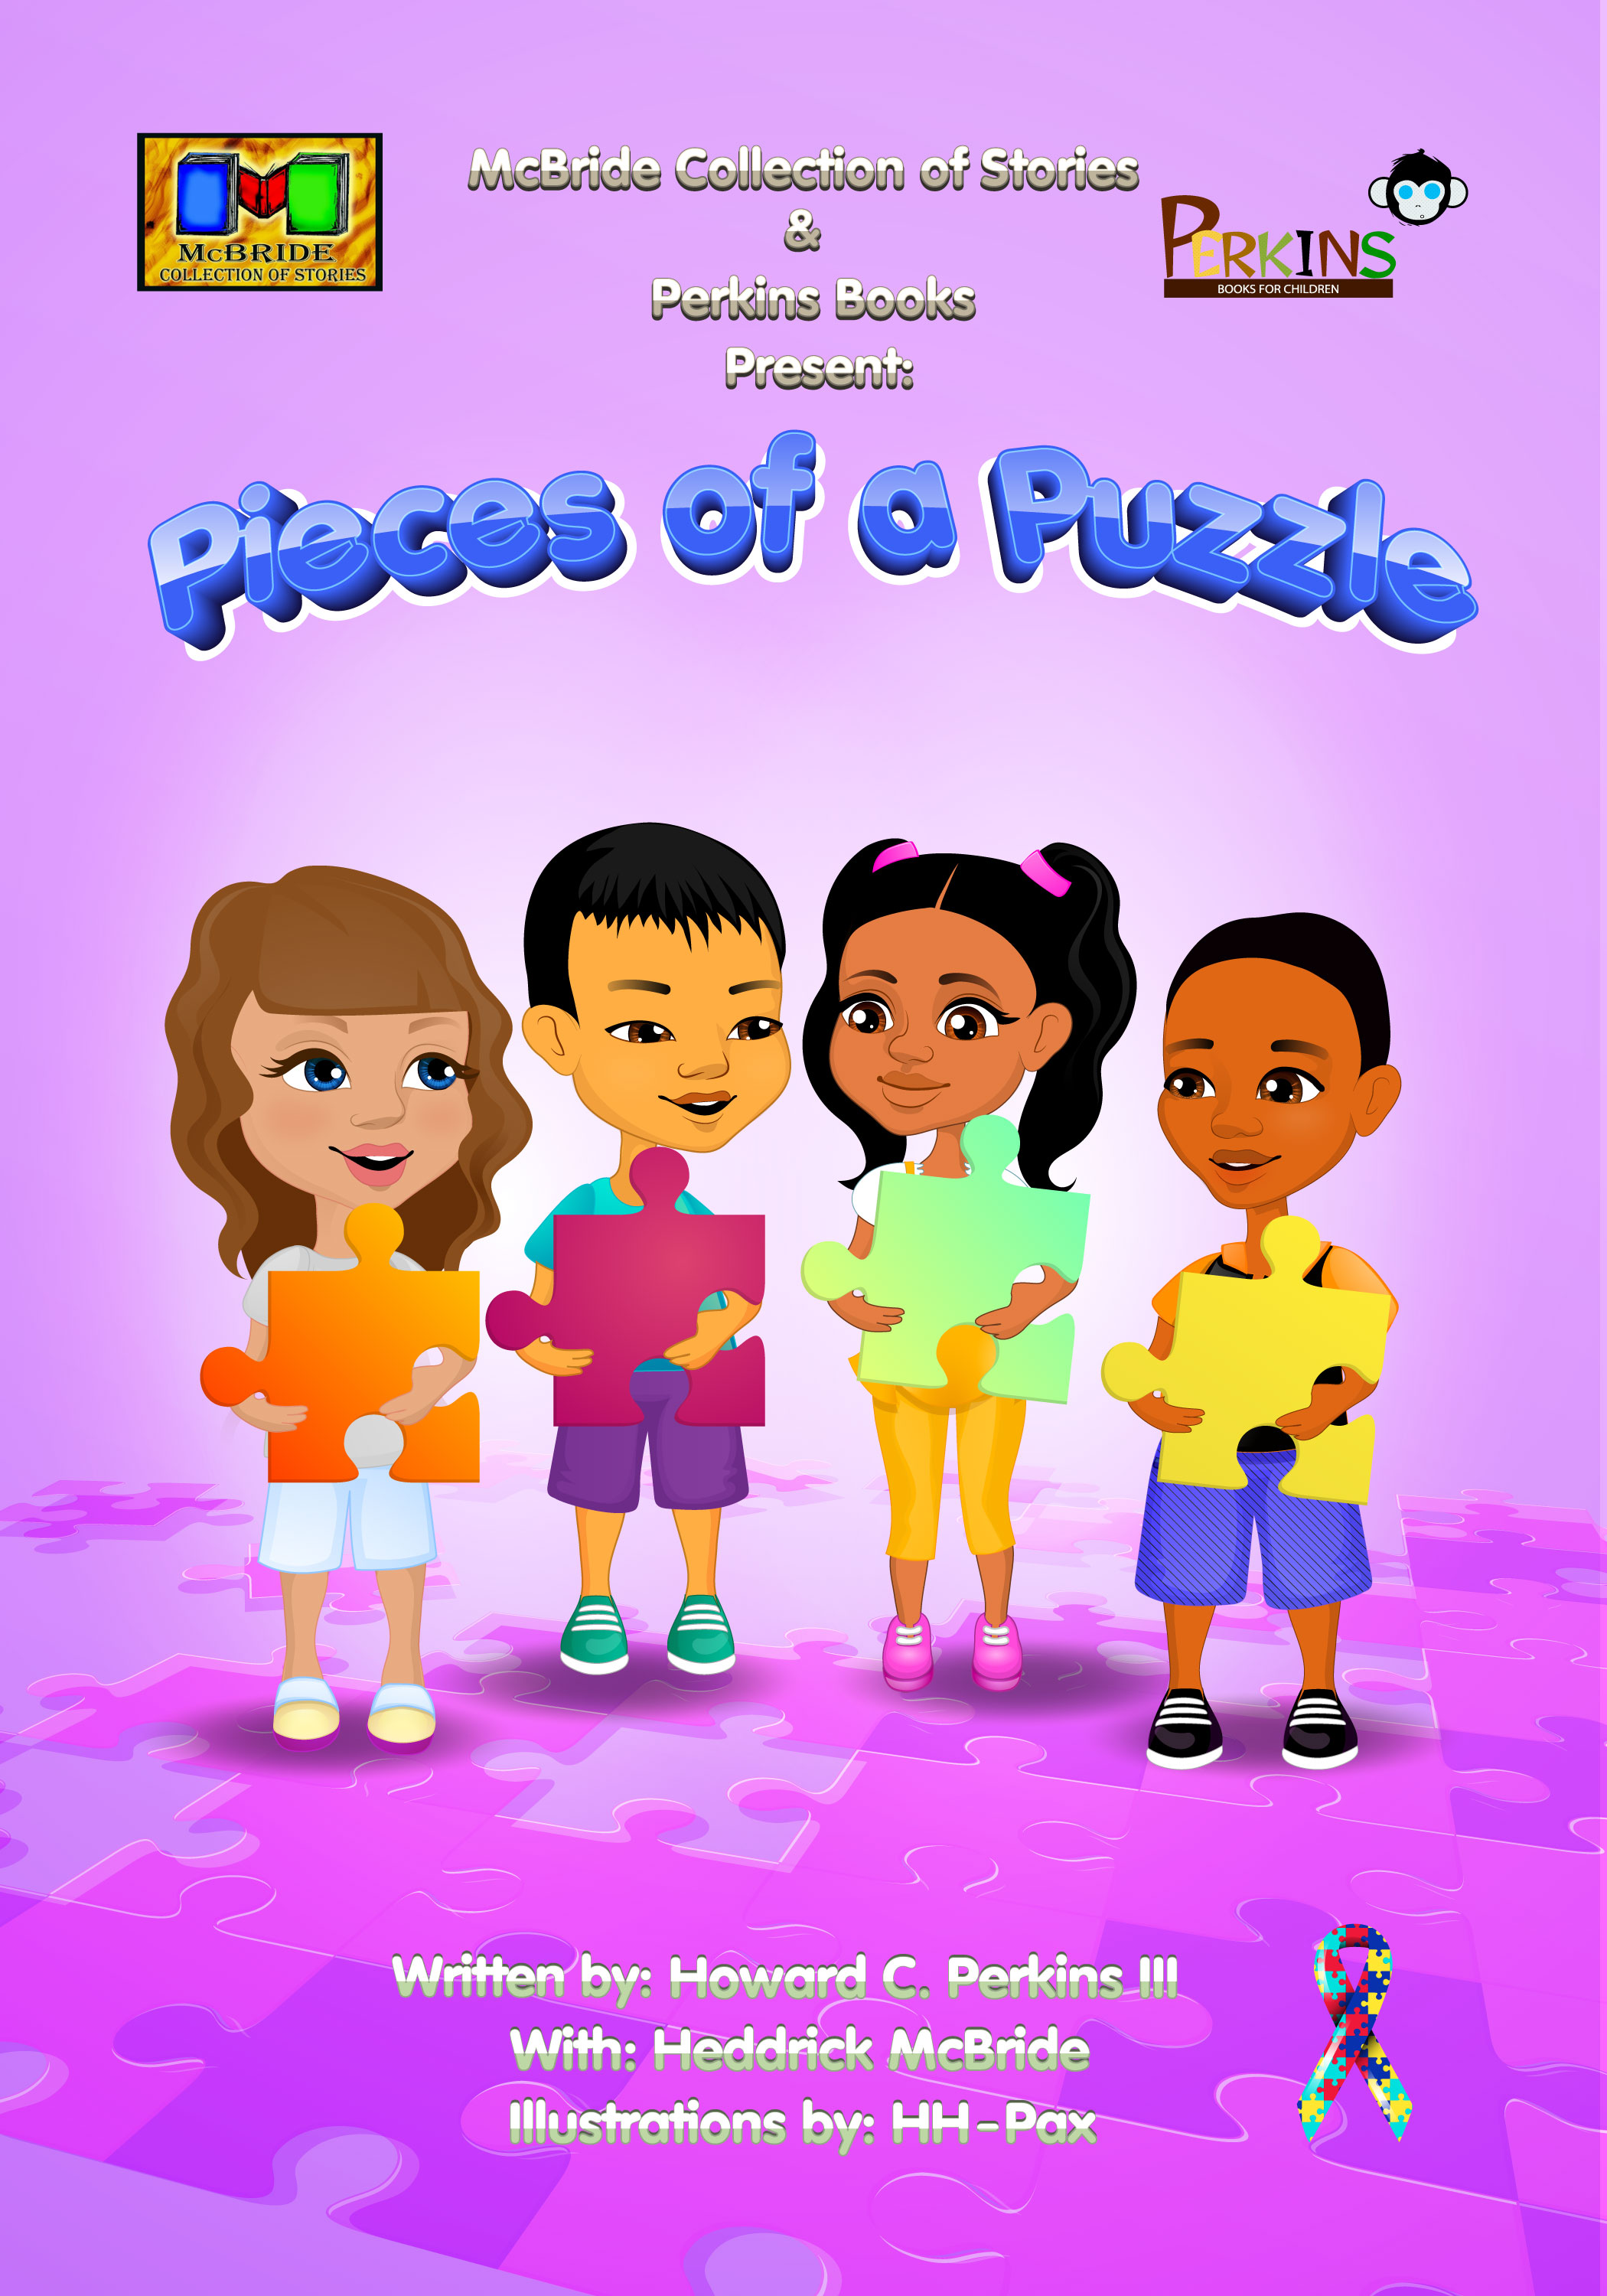 Interview – Howard C. Perkins on autism book, Pieces of a Puzzle